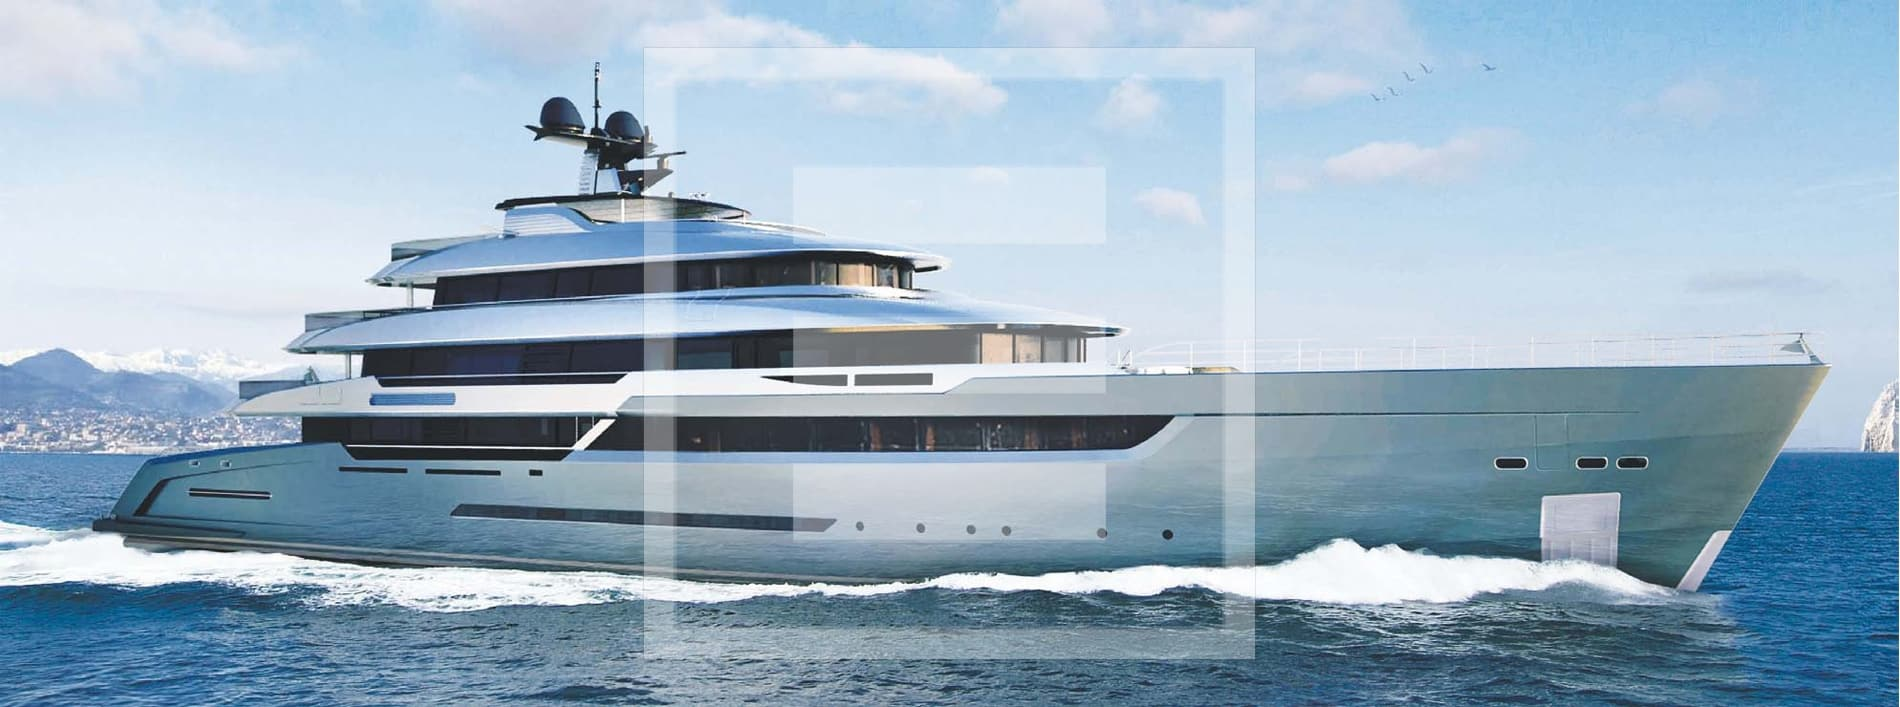 """""""The first genuine hybrid yacht"""": Sergio Cutolo's definition of the Columbus 40S Hybrid"""